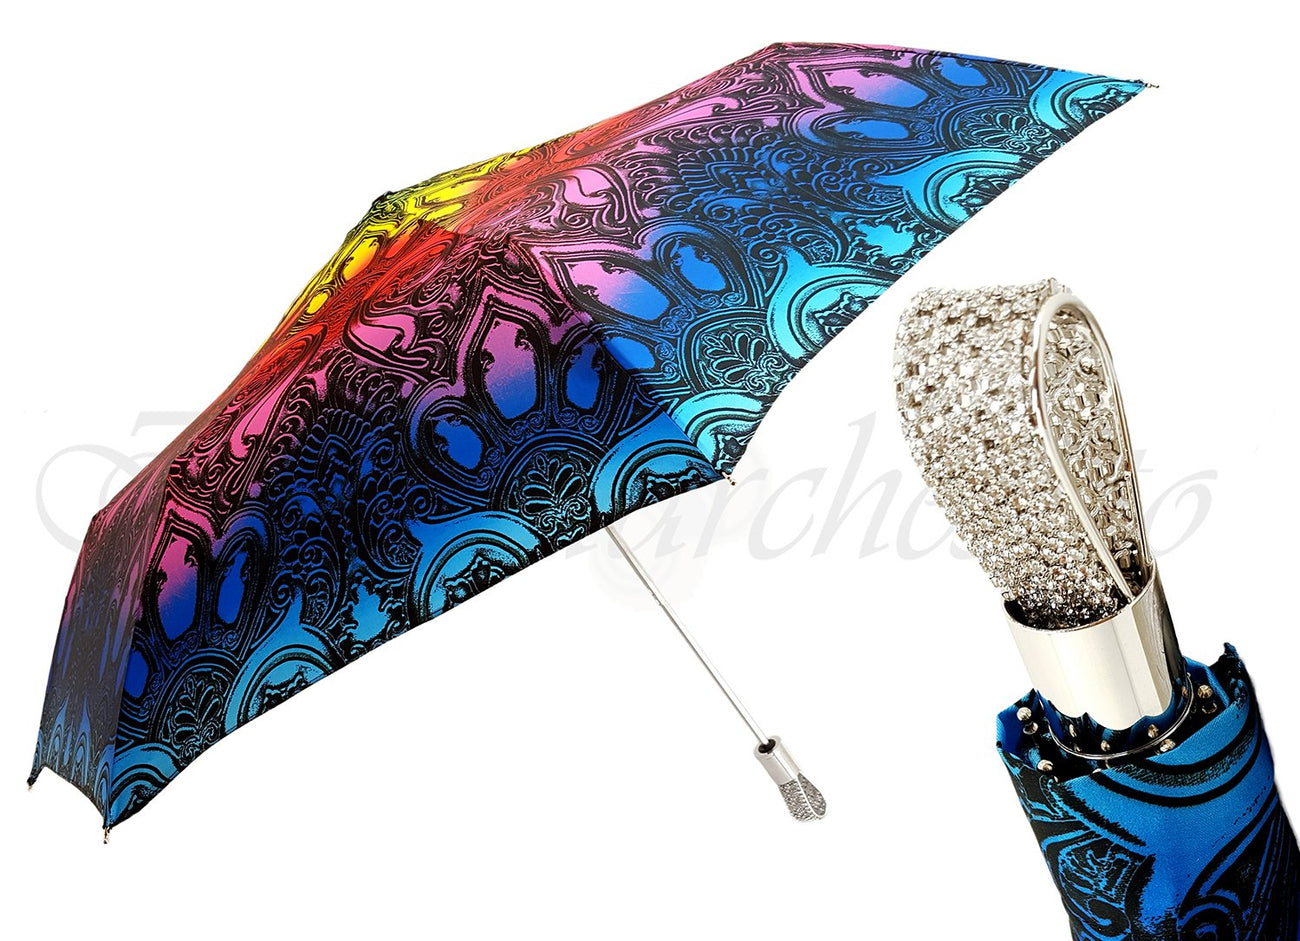 WOMEN'S FOLDING SWAROVSKI CRISTALS UMBRELLA